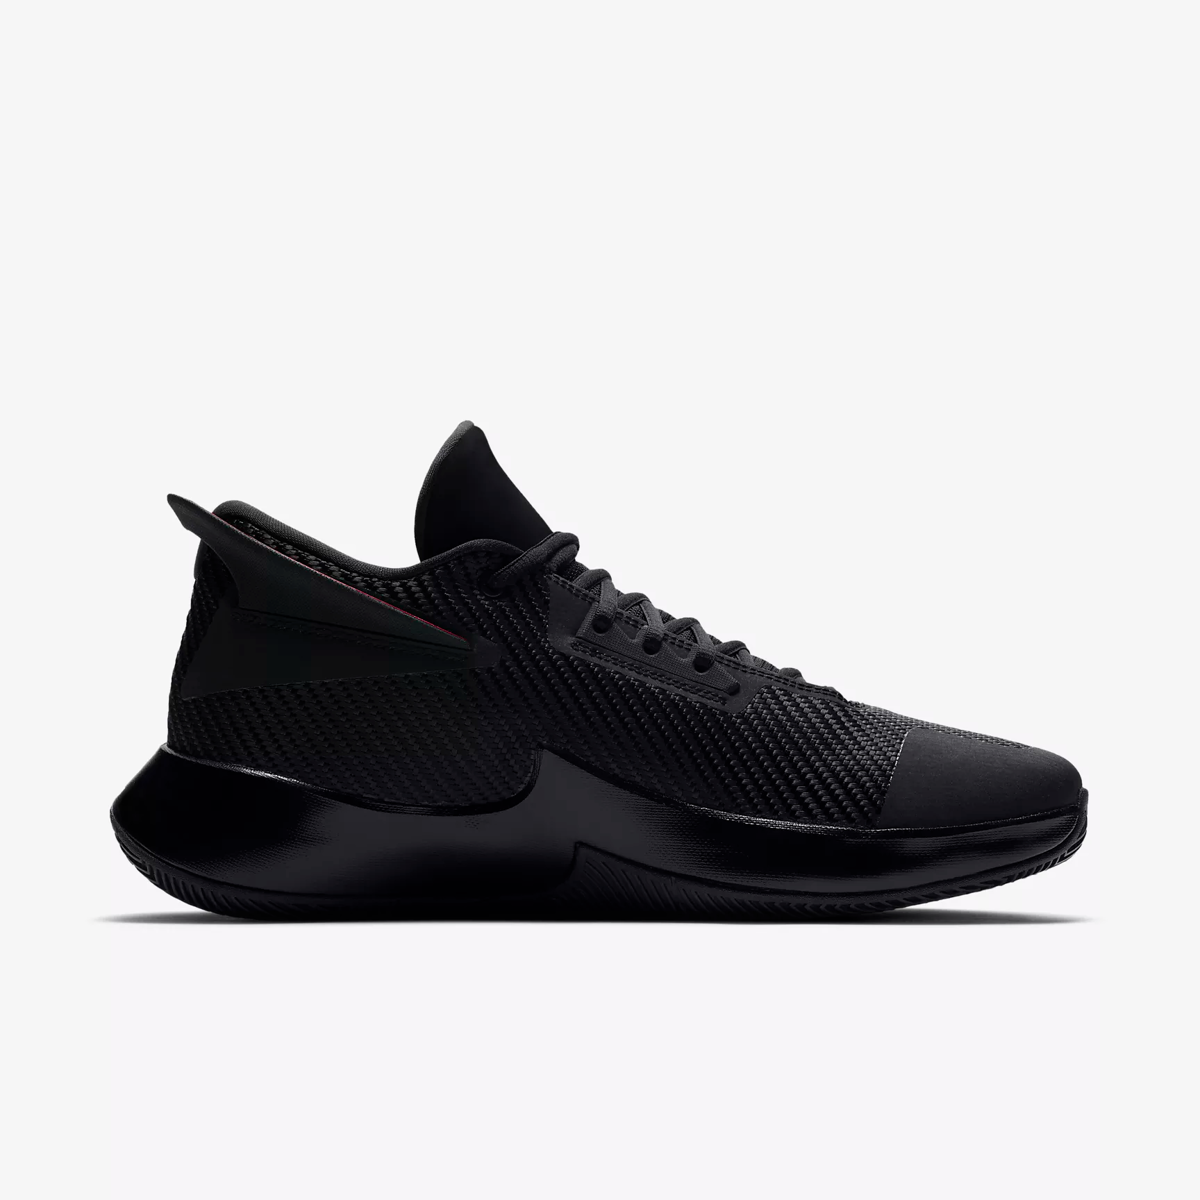 ... Air Jordan Fly Lockdown - AJ9499-601 ...